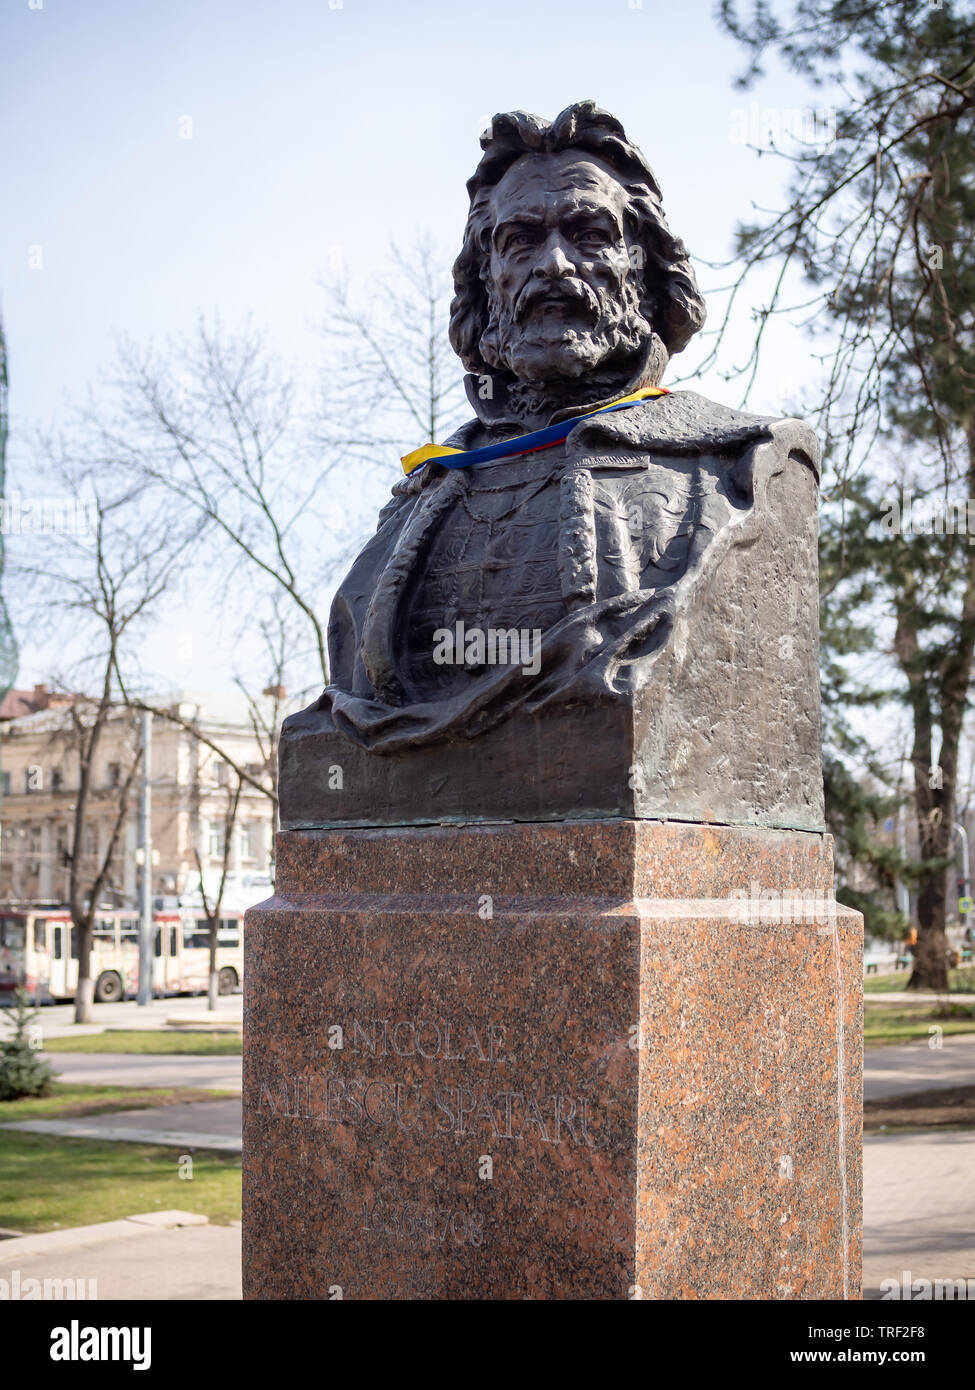 CHISINAU, MOLDOVA-MARCH 21, 2019:  Nicolae Milescu Spataru bust by Lev Averbuh in the Alley of Classics - Stock Image